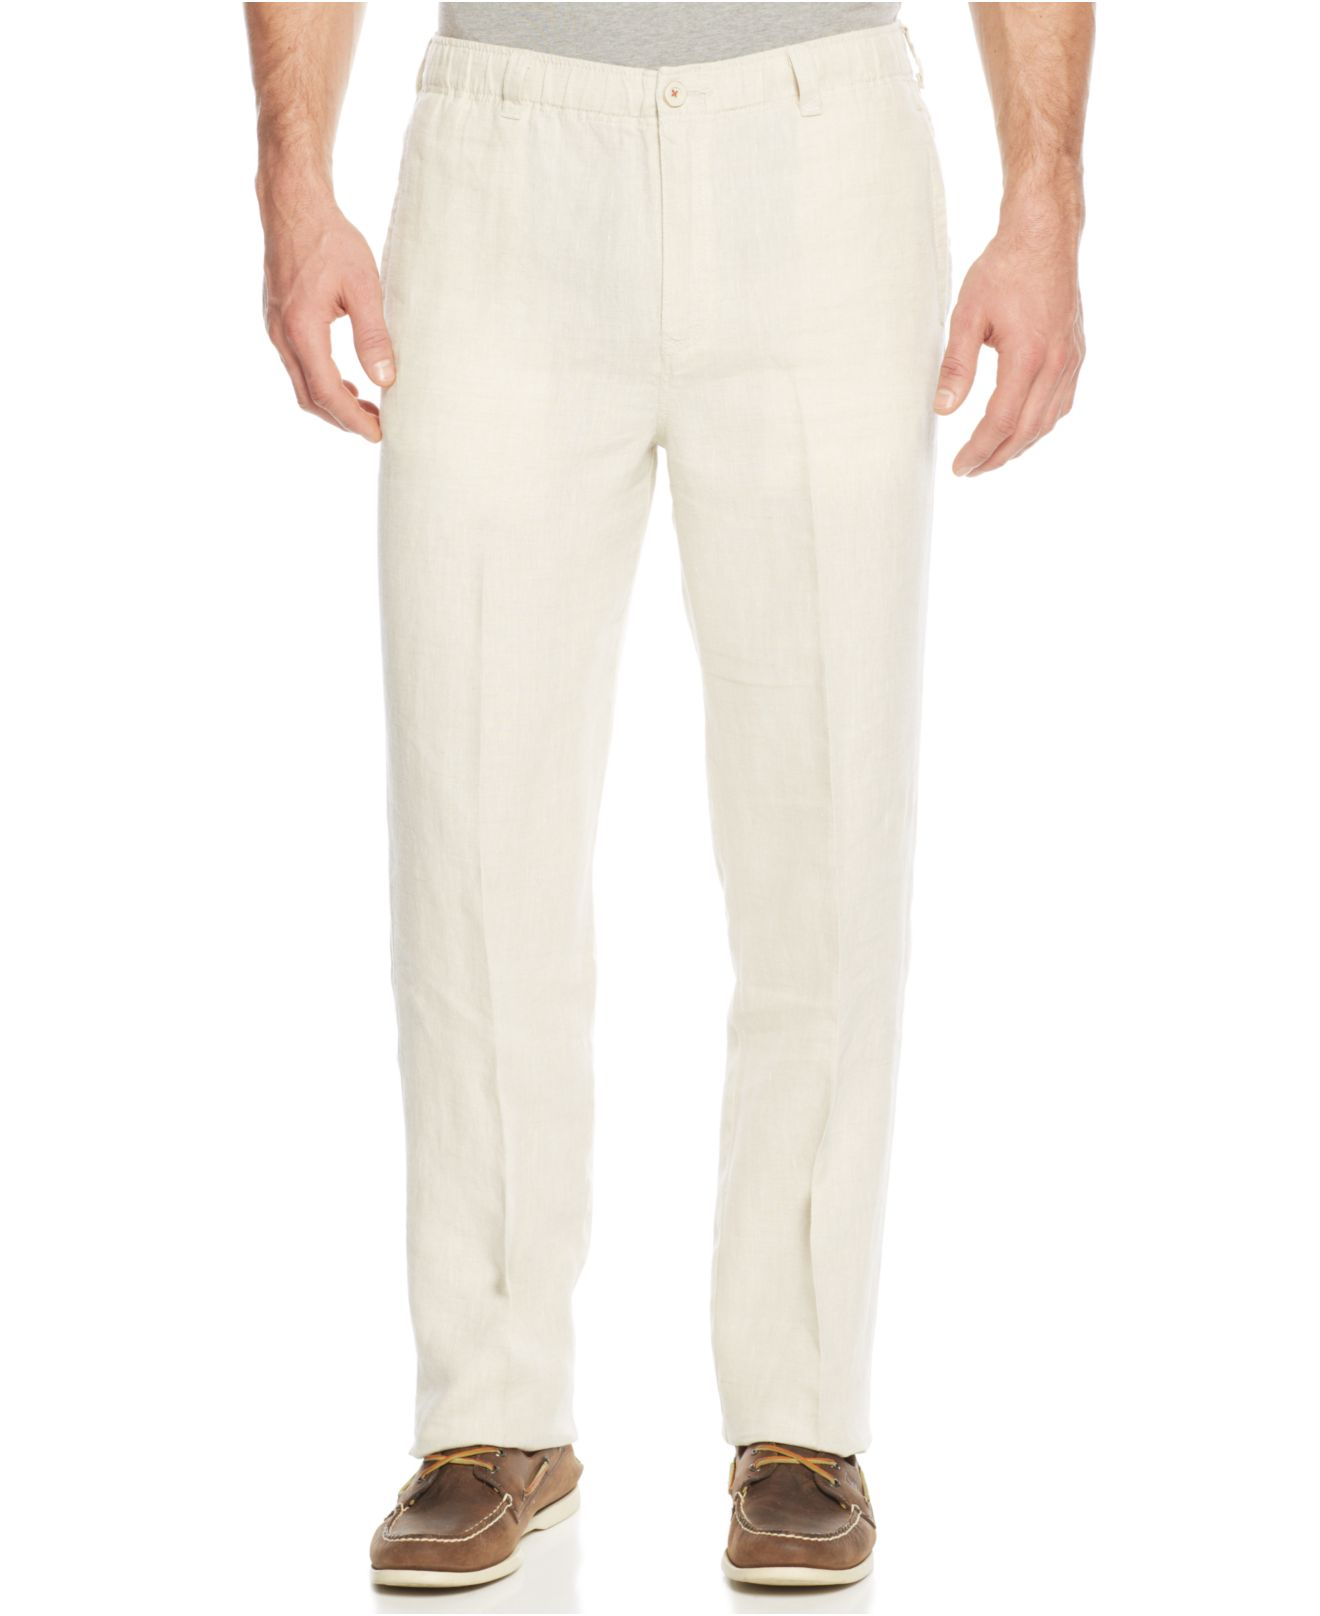 Linen trousers for men work wonderfully well in a professional setting, so easily find something to wear during work days or cool Casual Fridays. Crisp khaki dress pants are casual but still elegant, especially when worn with argyle sweaters or handsome cardigans and button-down shirts.